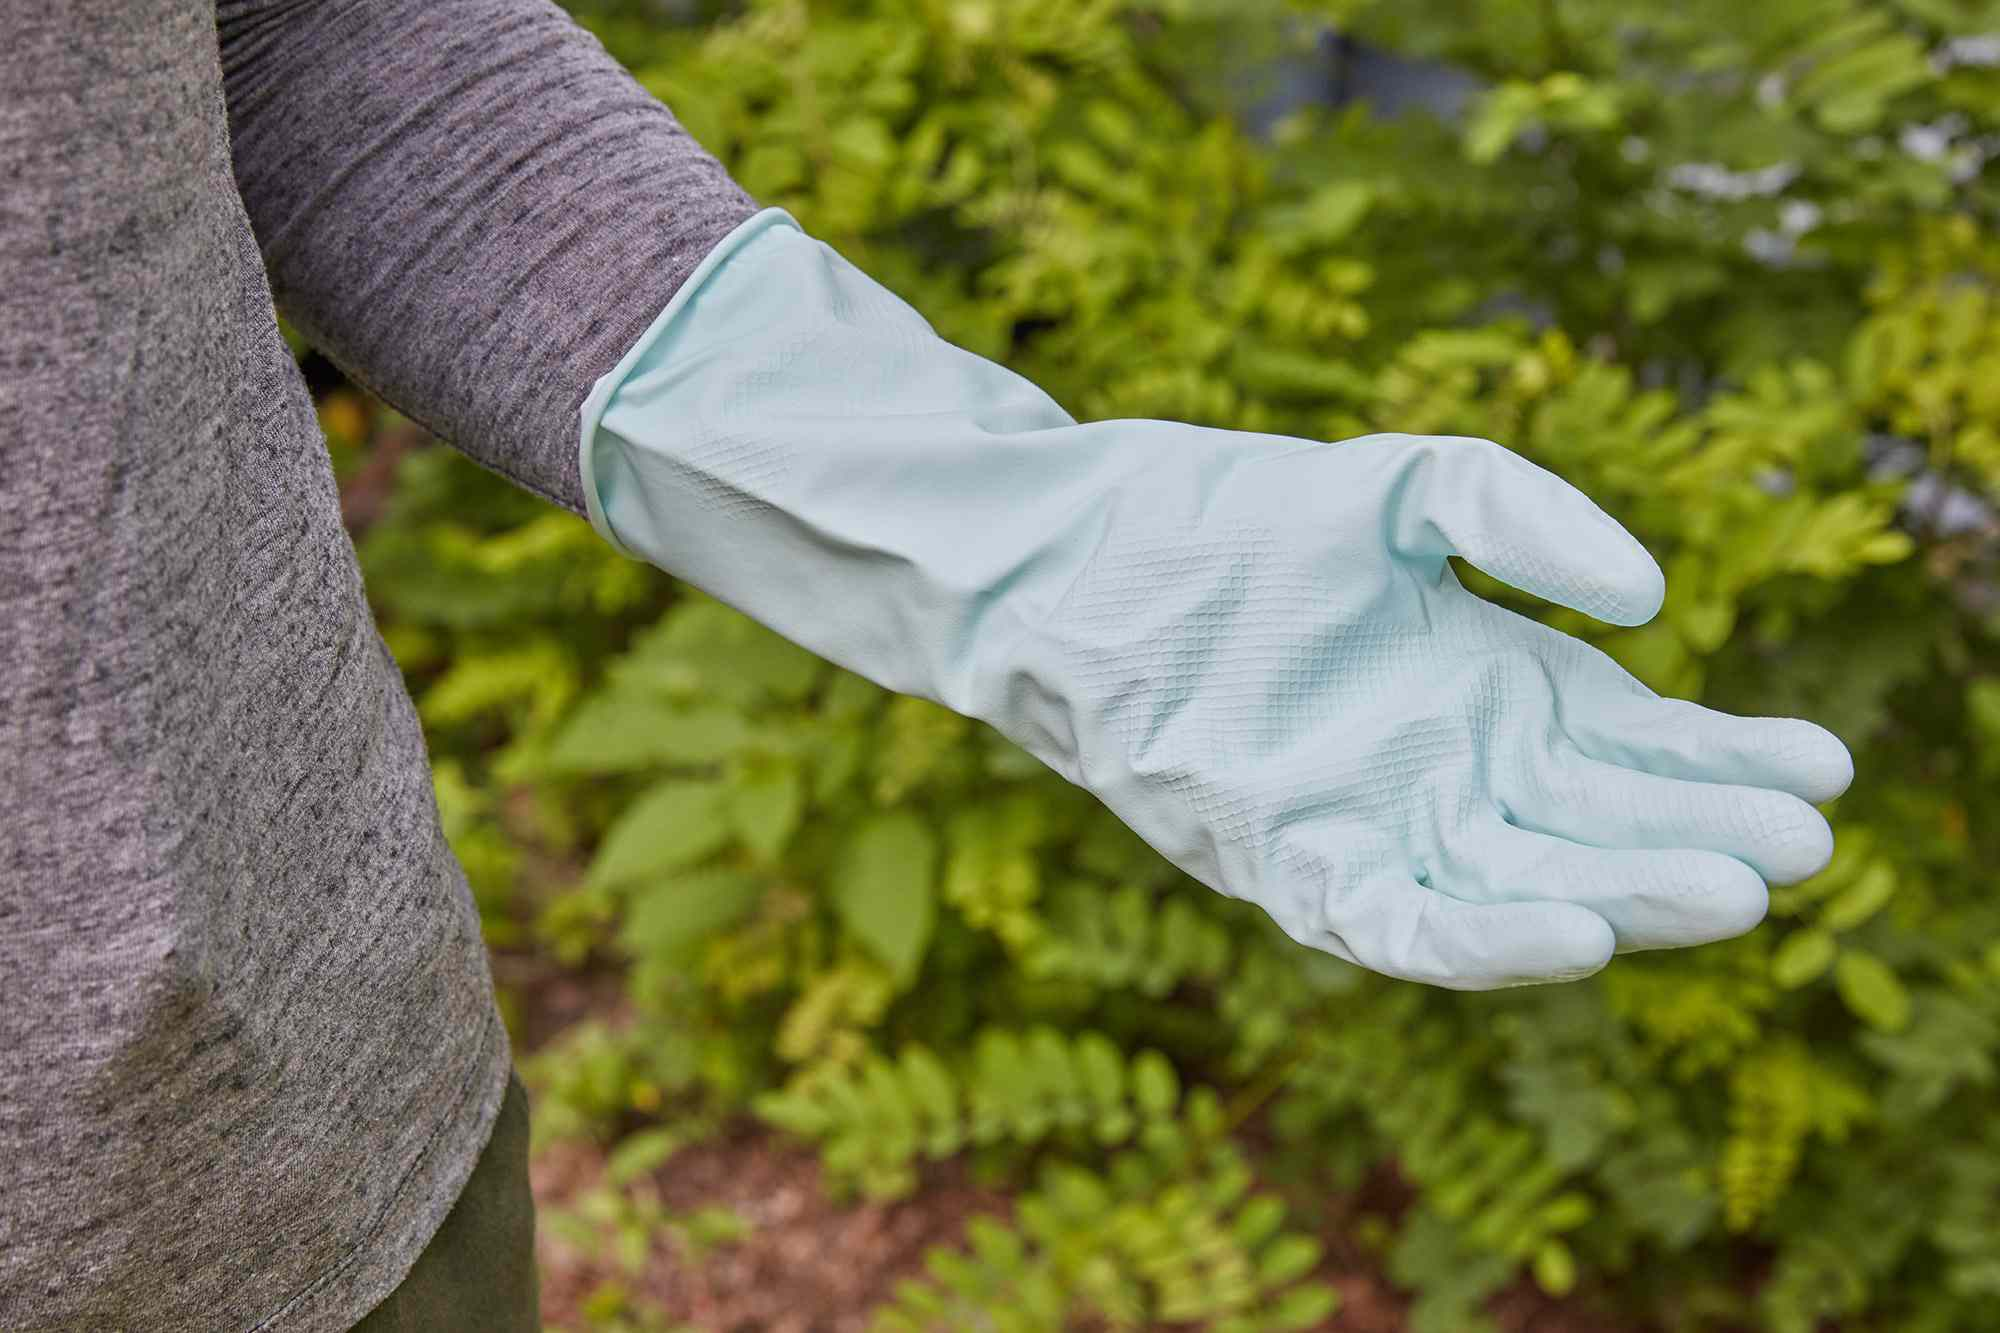 Light blue rubber gloves worn to remove poison ivy